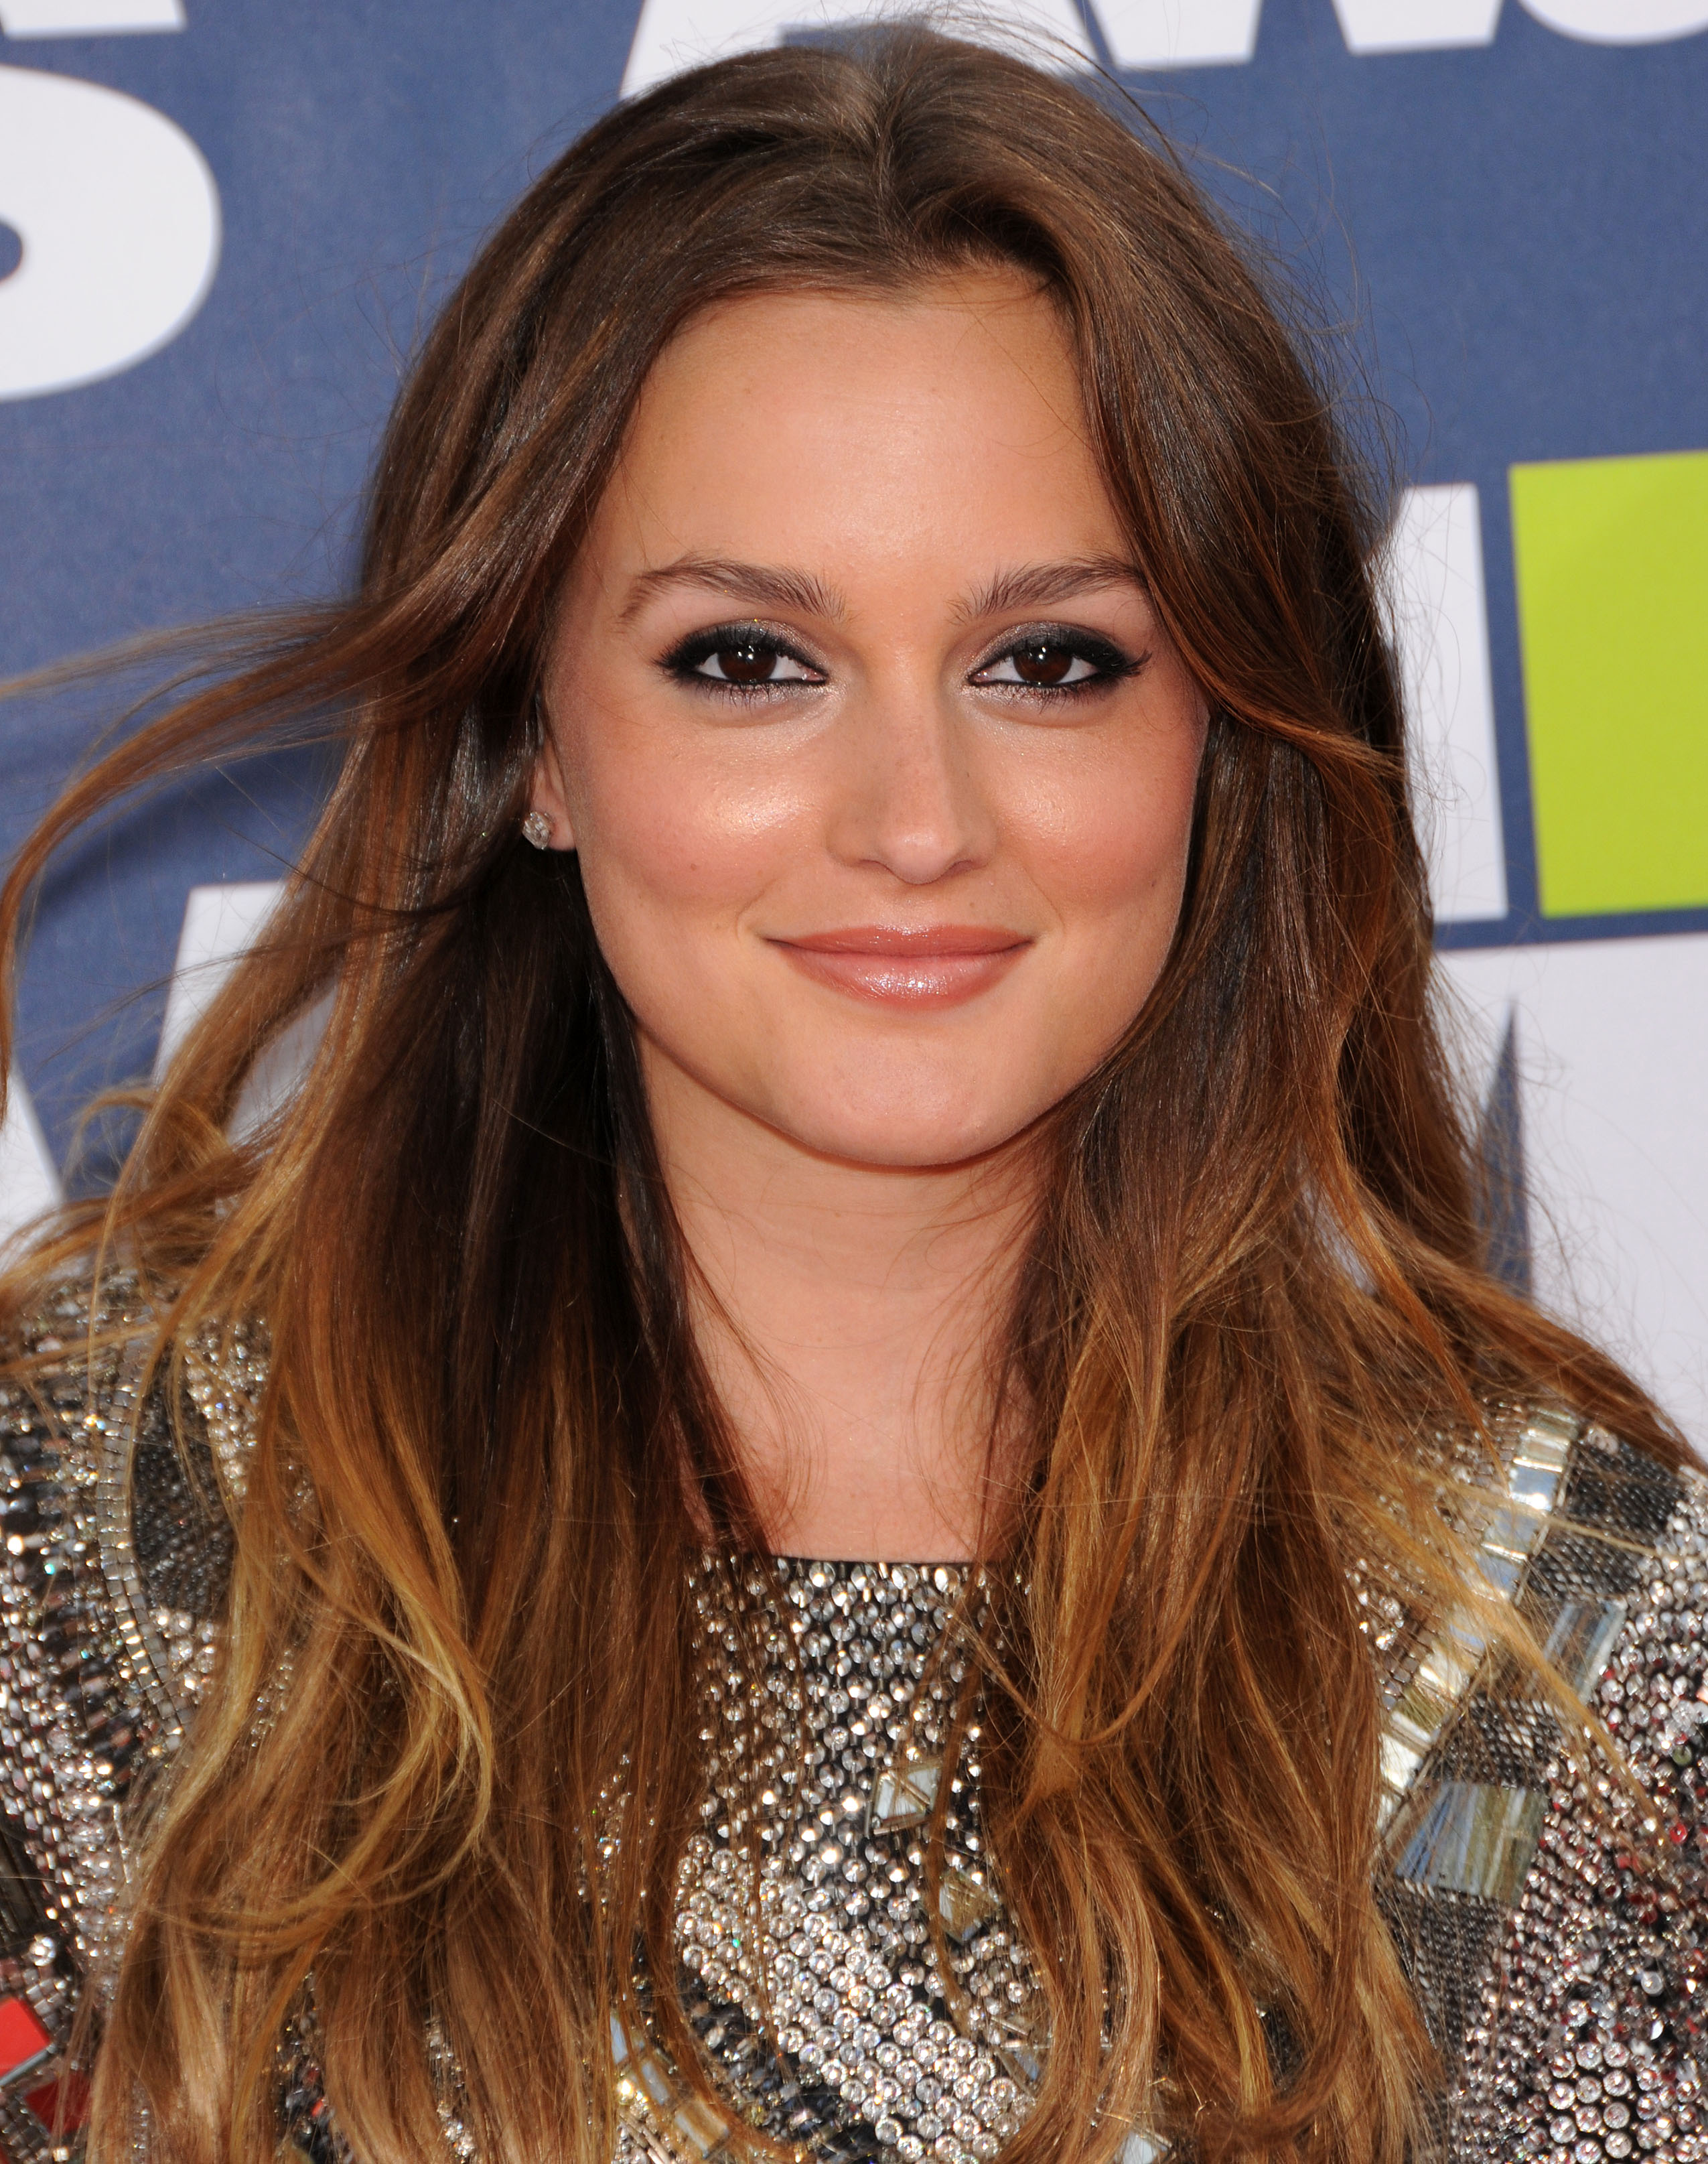 leighton meester – heartstrings перевод